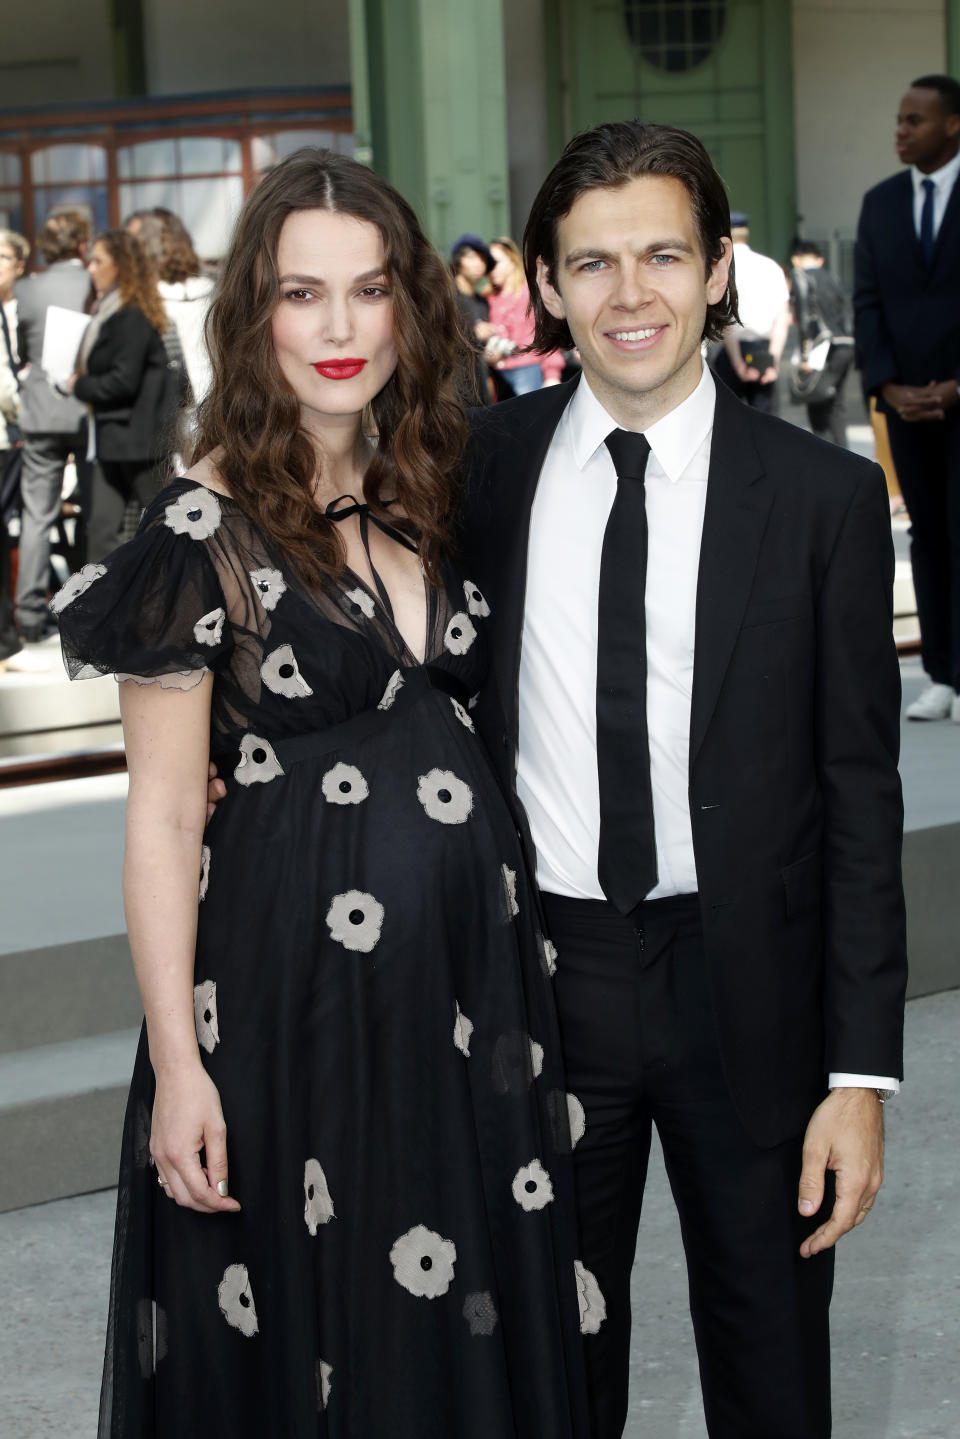 PARIS, FRANCE - MAY 03: Keira Knightley and James Righton attend the Chanel Cruise Collection 2020 : Front Row at Le Grand Palais on May 03, 2019 in Paris, France. (Photo by Bertrand Rindoff Petroff/Getty Images)